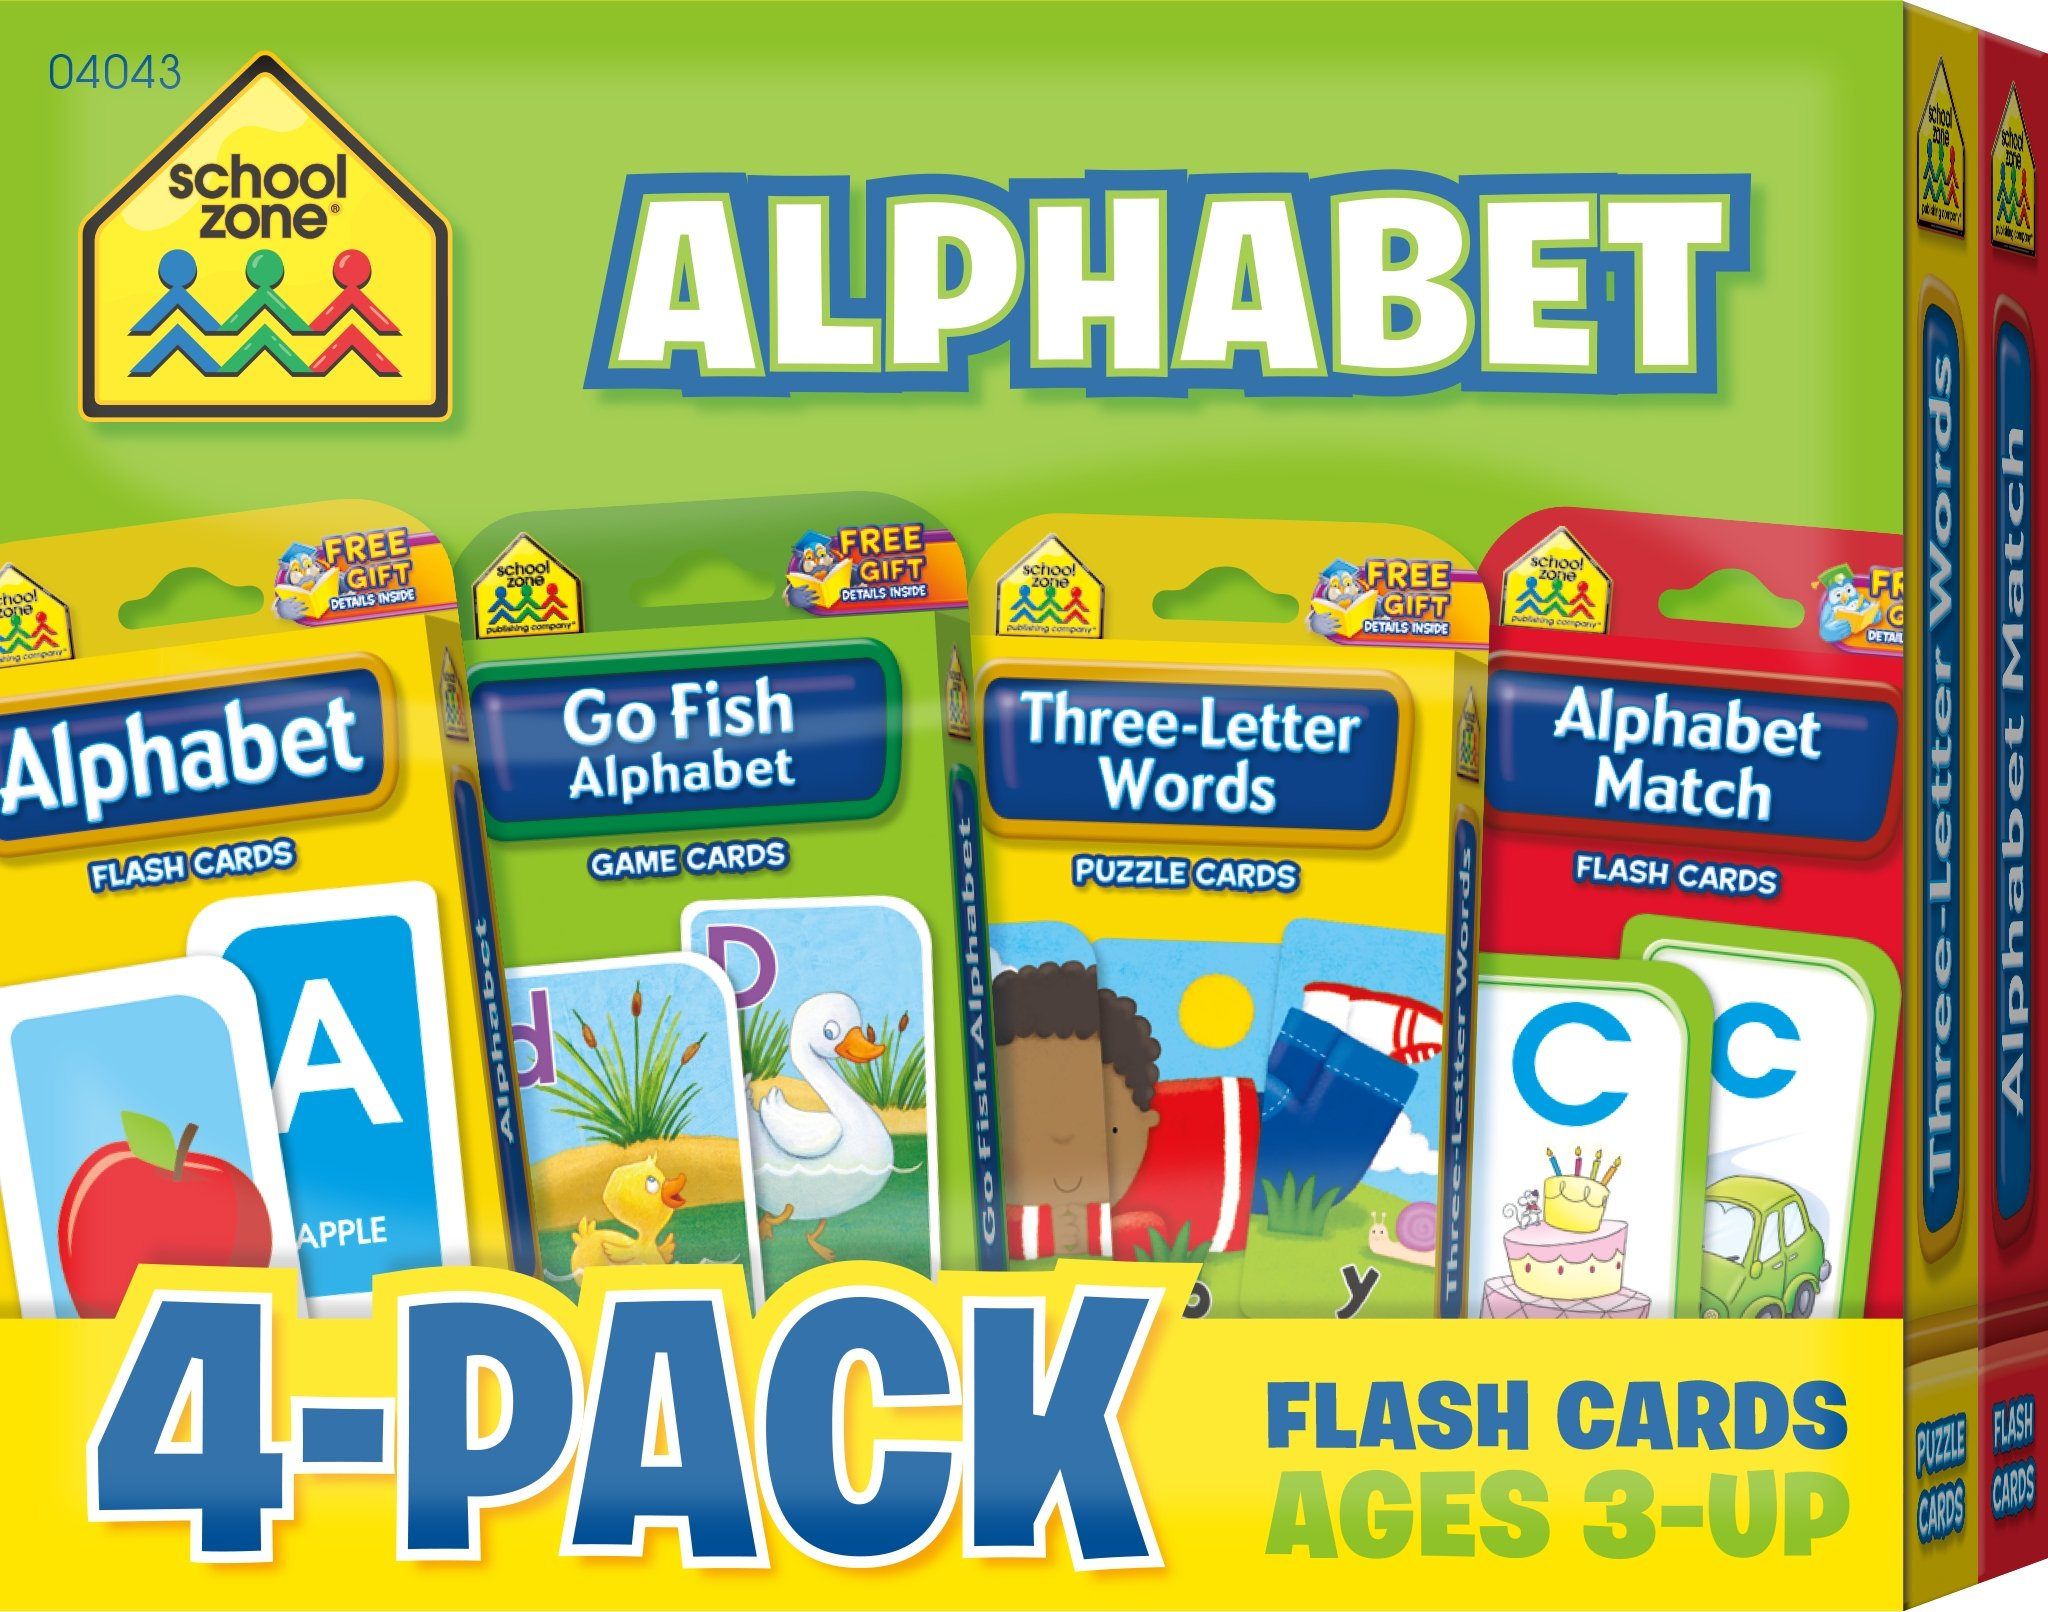 School Zone - Alphabet Flash Card 4-Pack - Ages 3 and Up, Lowercase and Uppercase Letters, Letter-Picture Recognition, Beginning Sounds, and More (Flash Card 4-pk)